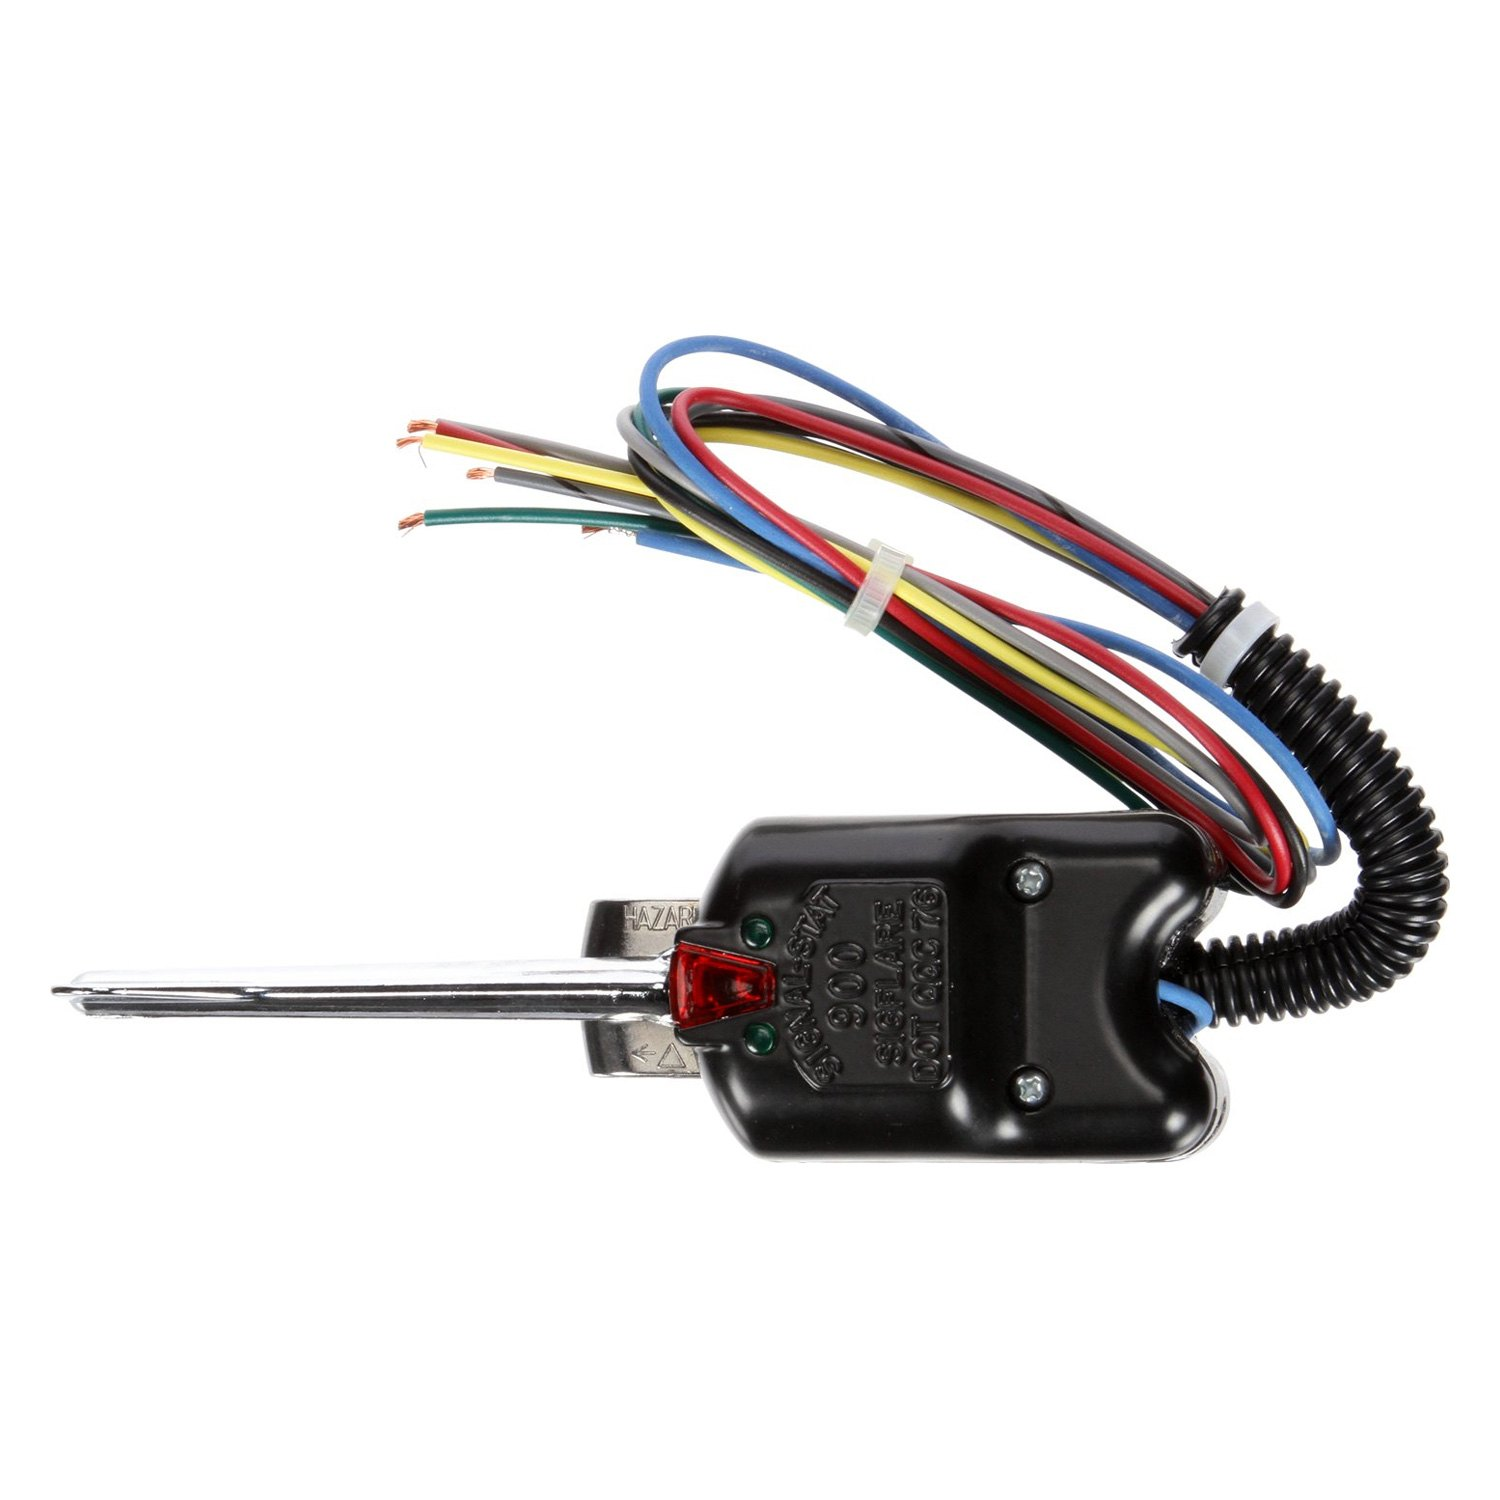 900 3 truck lite� 900 black polycarbonate 7 wire harness turn signal Chevy Truck Wiring Harness at reclaimingppi.co